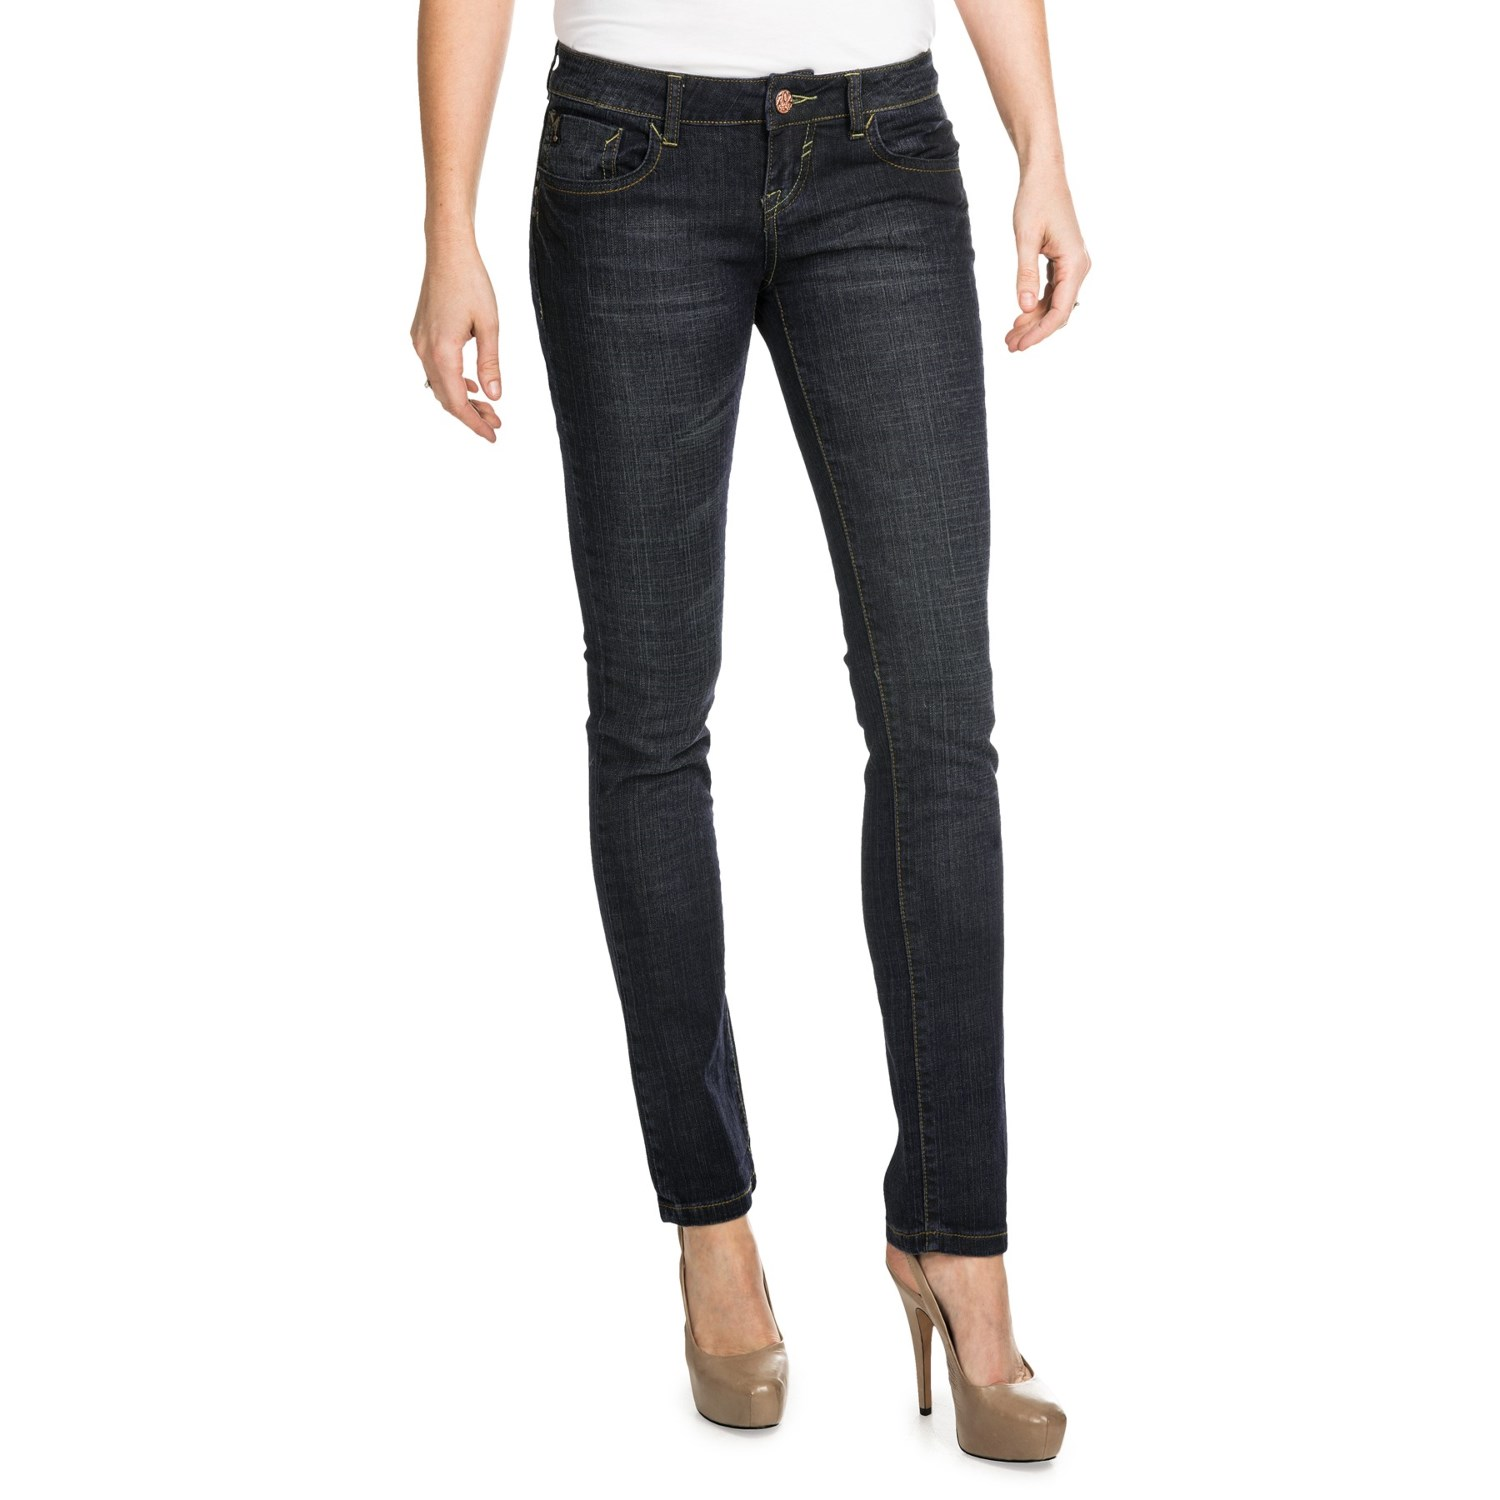 jeans for woman: